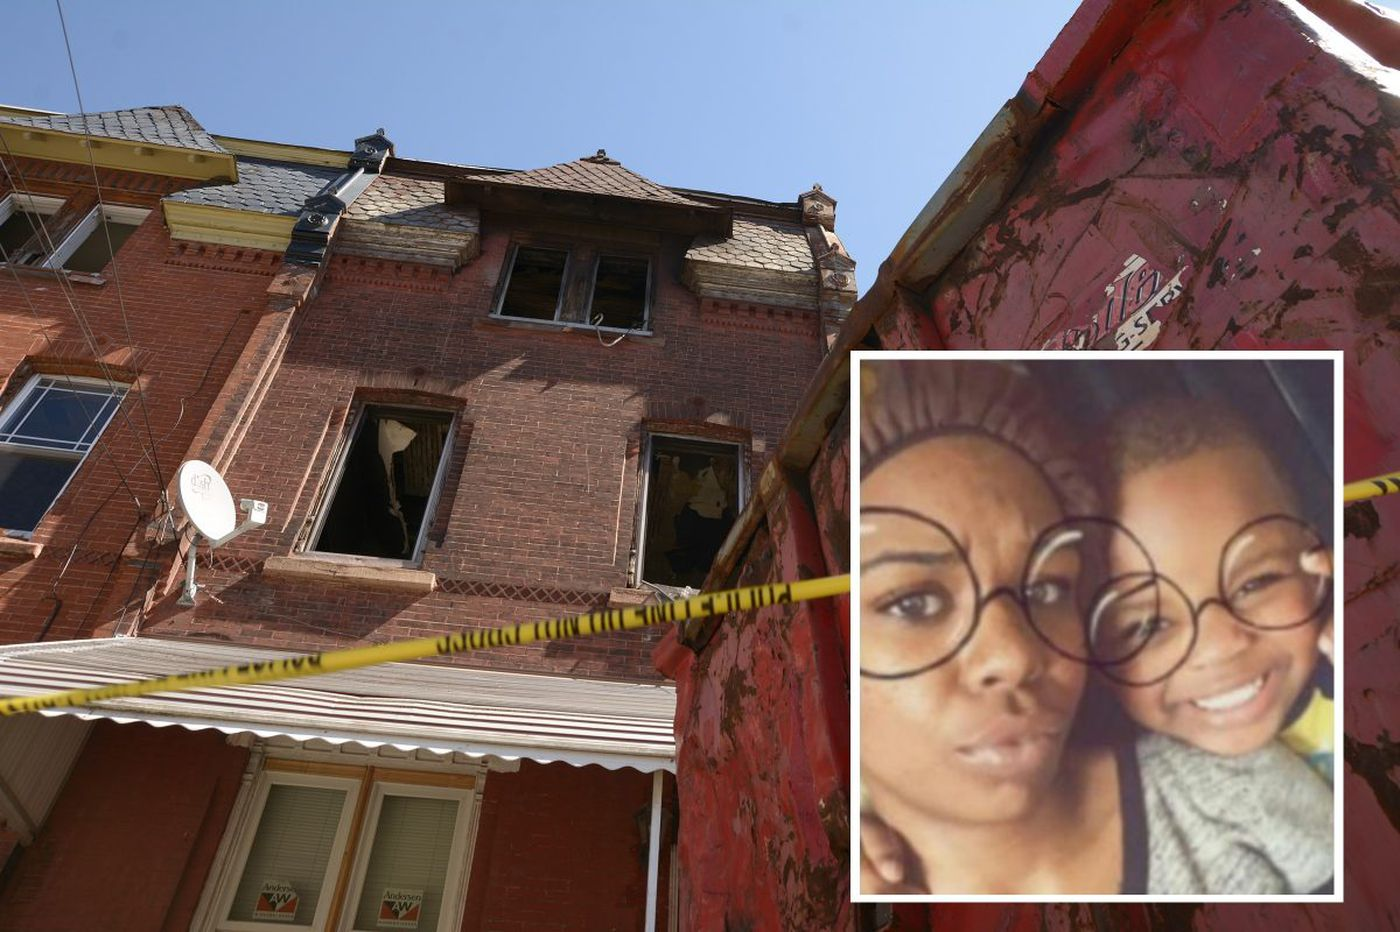 Philly needs a strategy to deal with negligent landlords before tragedy strikes | Editorial